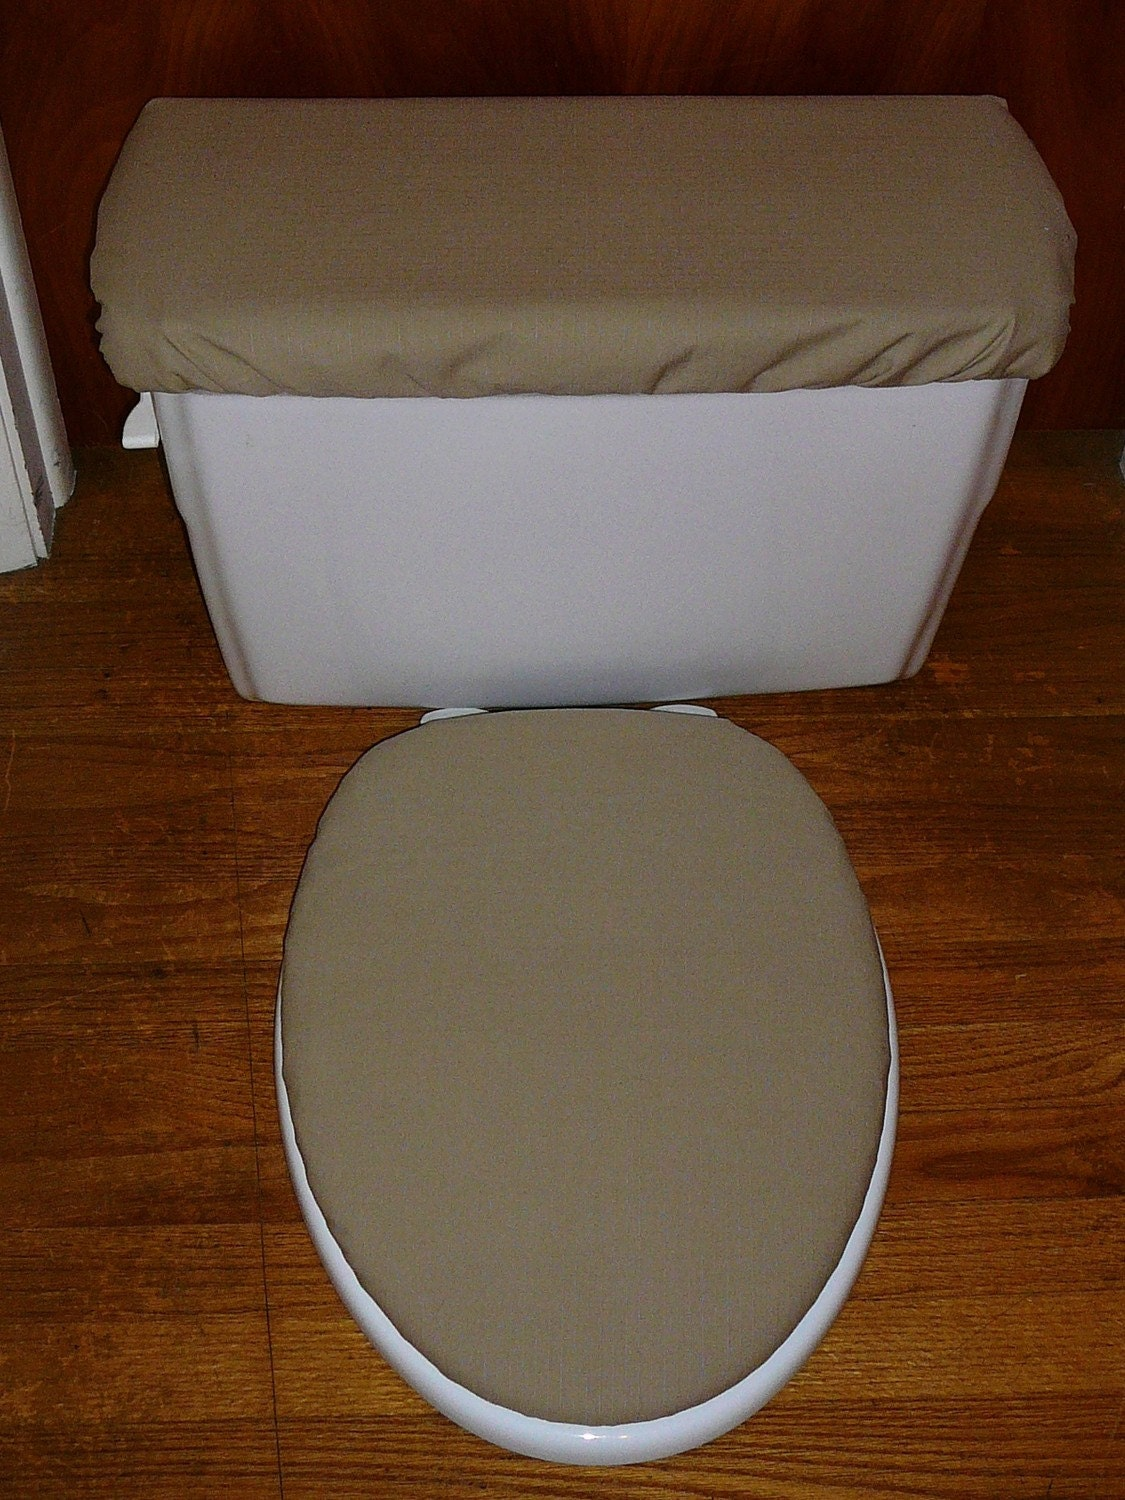 tan beige toilet seat cover and tank lid cover set. Black Bedroom Furniture Sets. Home Design Ideas